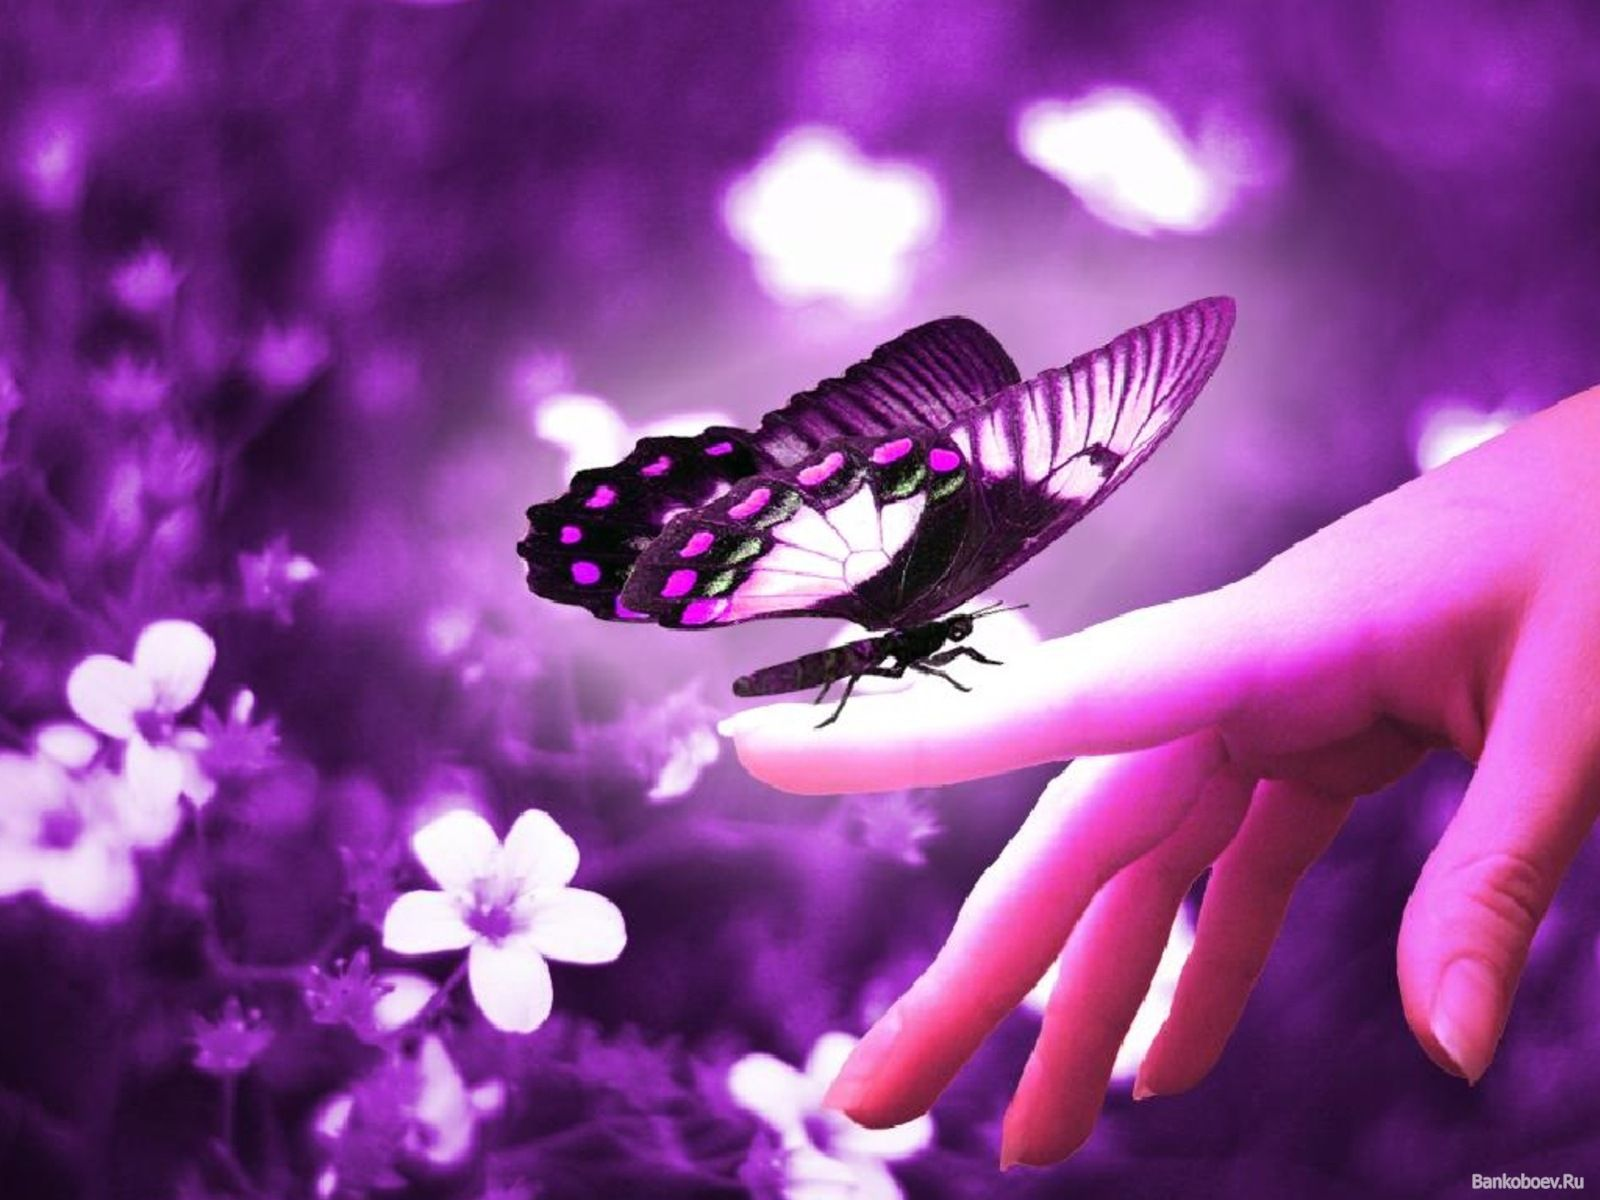 Cute Purple Backgrounds Cute Butterfly In Purple Purple Colour Images Free Good Morning Images Butterfly Images